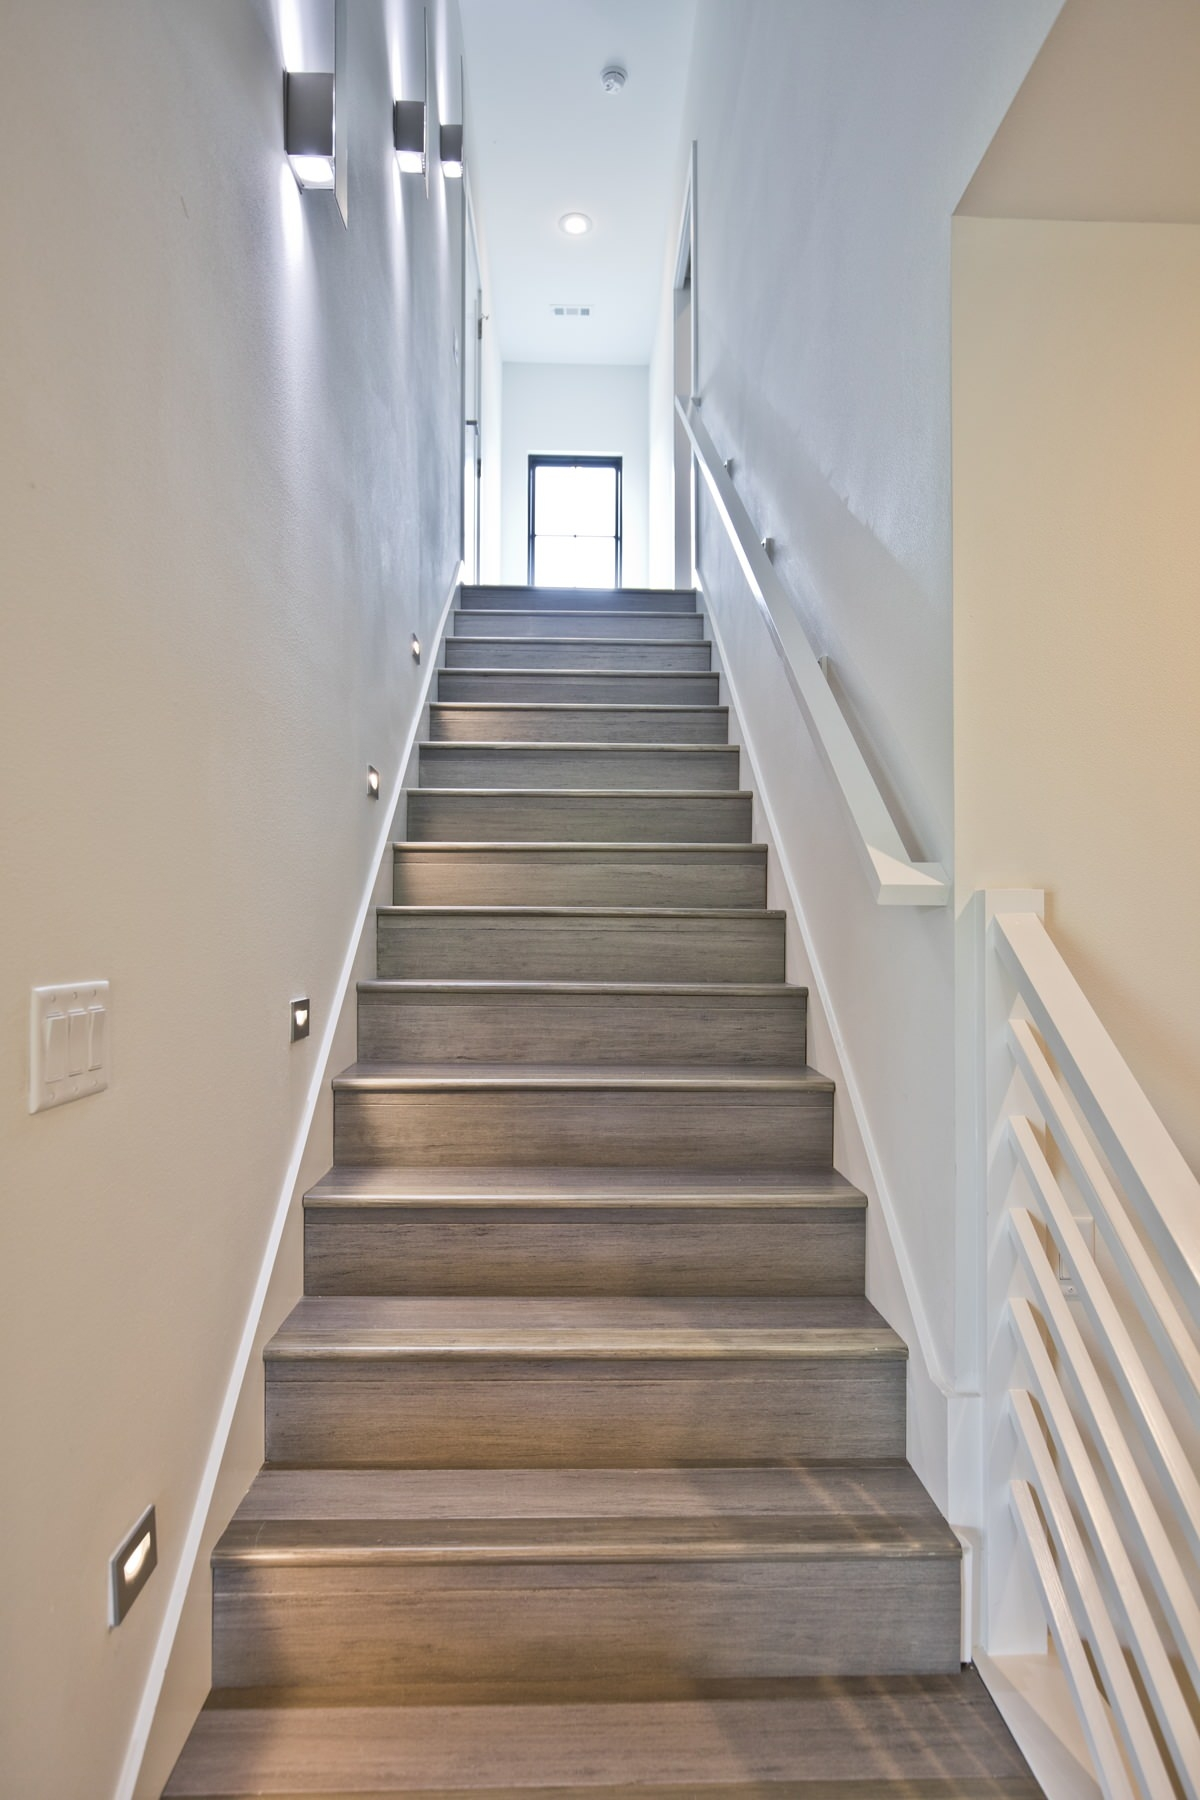 75 Beautiful Staircase Pictures Ideas September 2020 Houzz | Staircase Window Design Exterior | Round Shape Window | Car Parking | 2Nd Floor House Front Elevation | Section Window | Corner Window